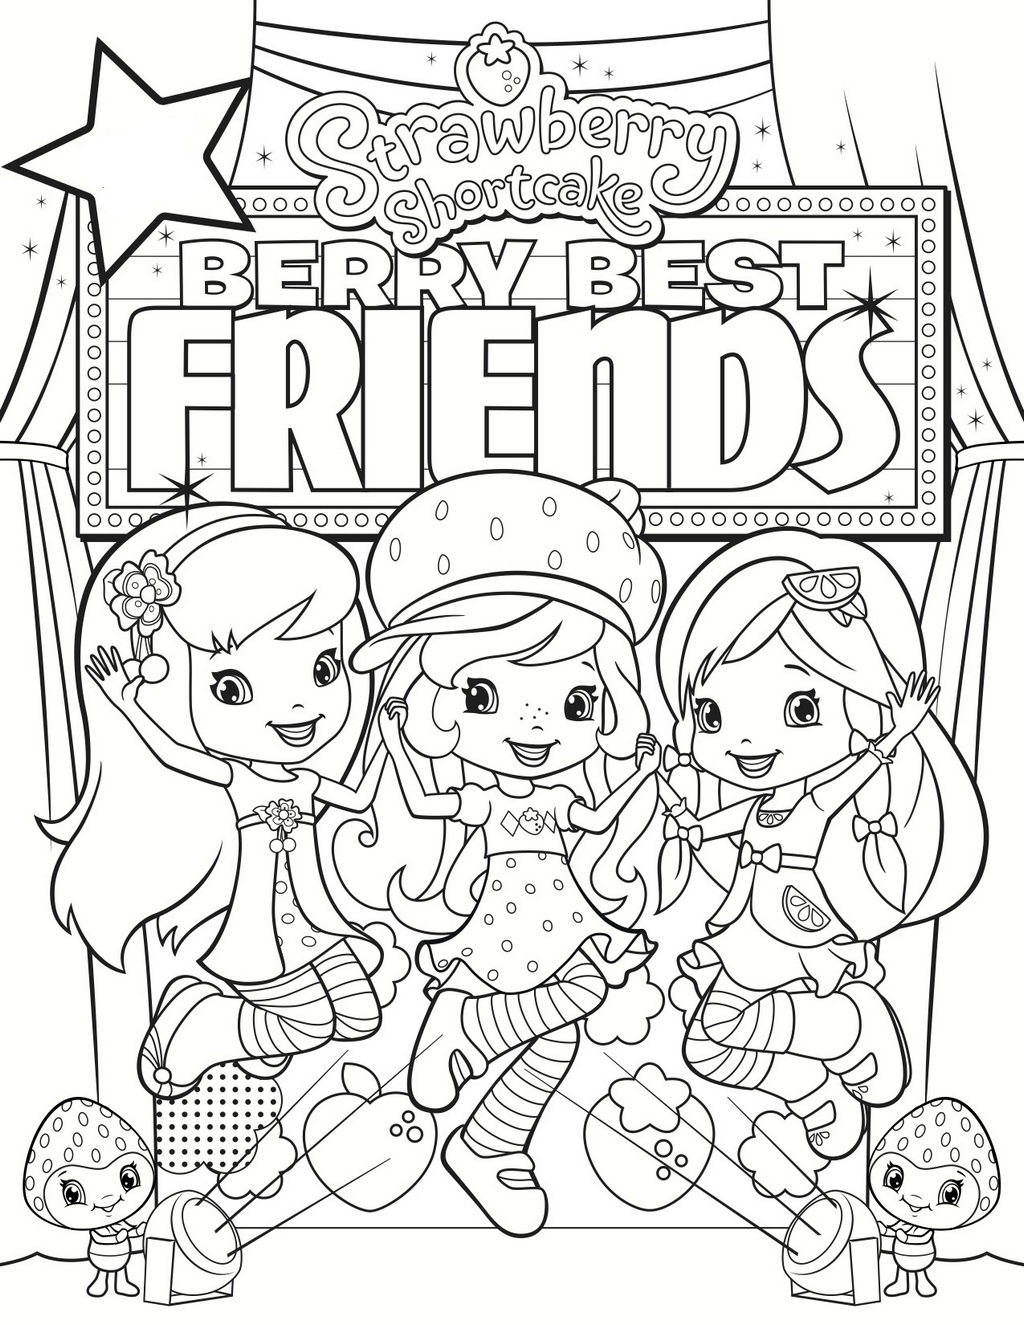 Berry Best Friends Coloring Page Printable